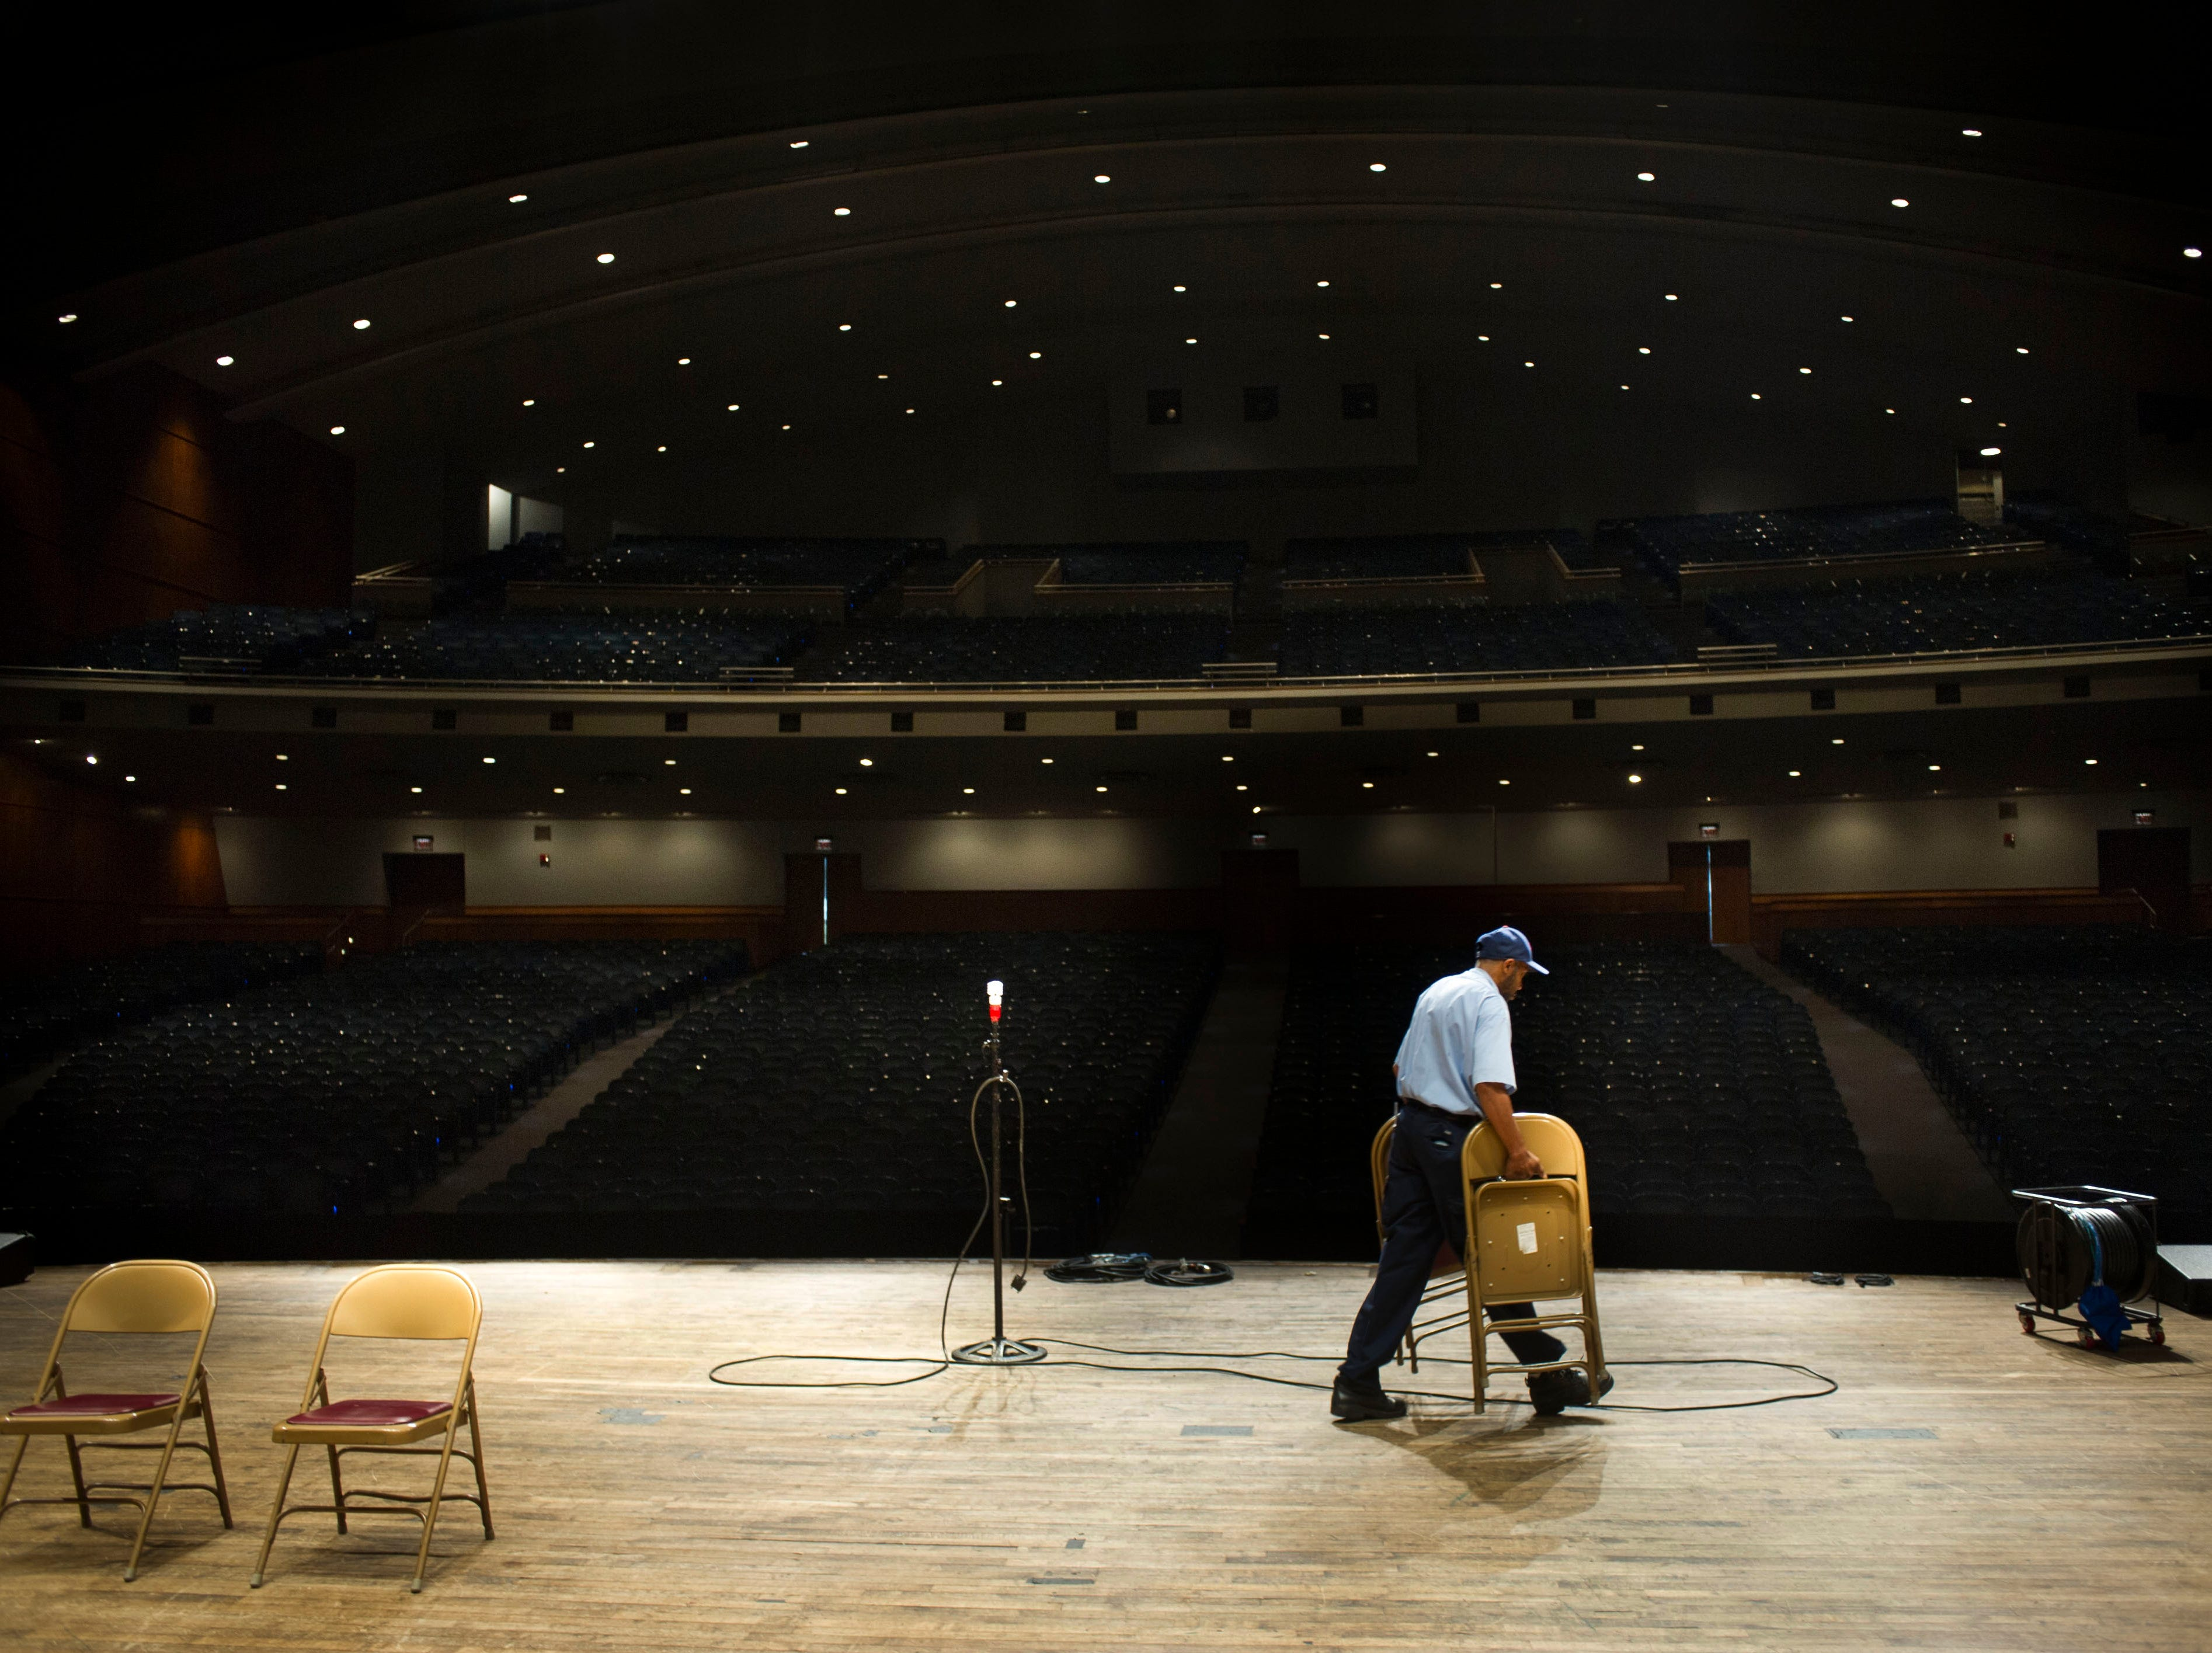 Ceddy Taylor prepares the stage for the upcoming Southeastern Stomp Fest Thursday, Oct. 9, 2014, at the Knoxville Civic Auditorium. The Urban Land Institute, an urban planning and design research firm, is studying five sites in or near downtown, including the Civic Auditorium and Coliseum, in order to give recommendations for improvement.